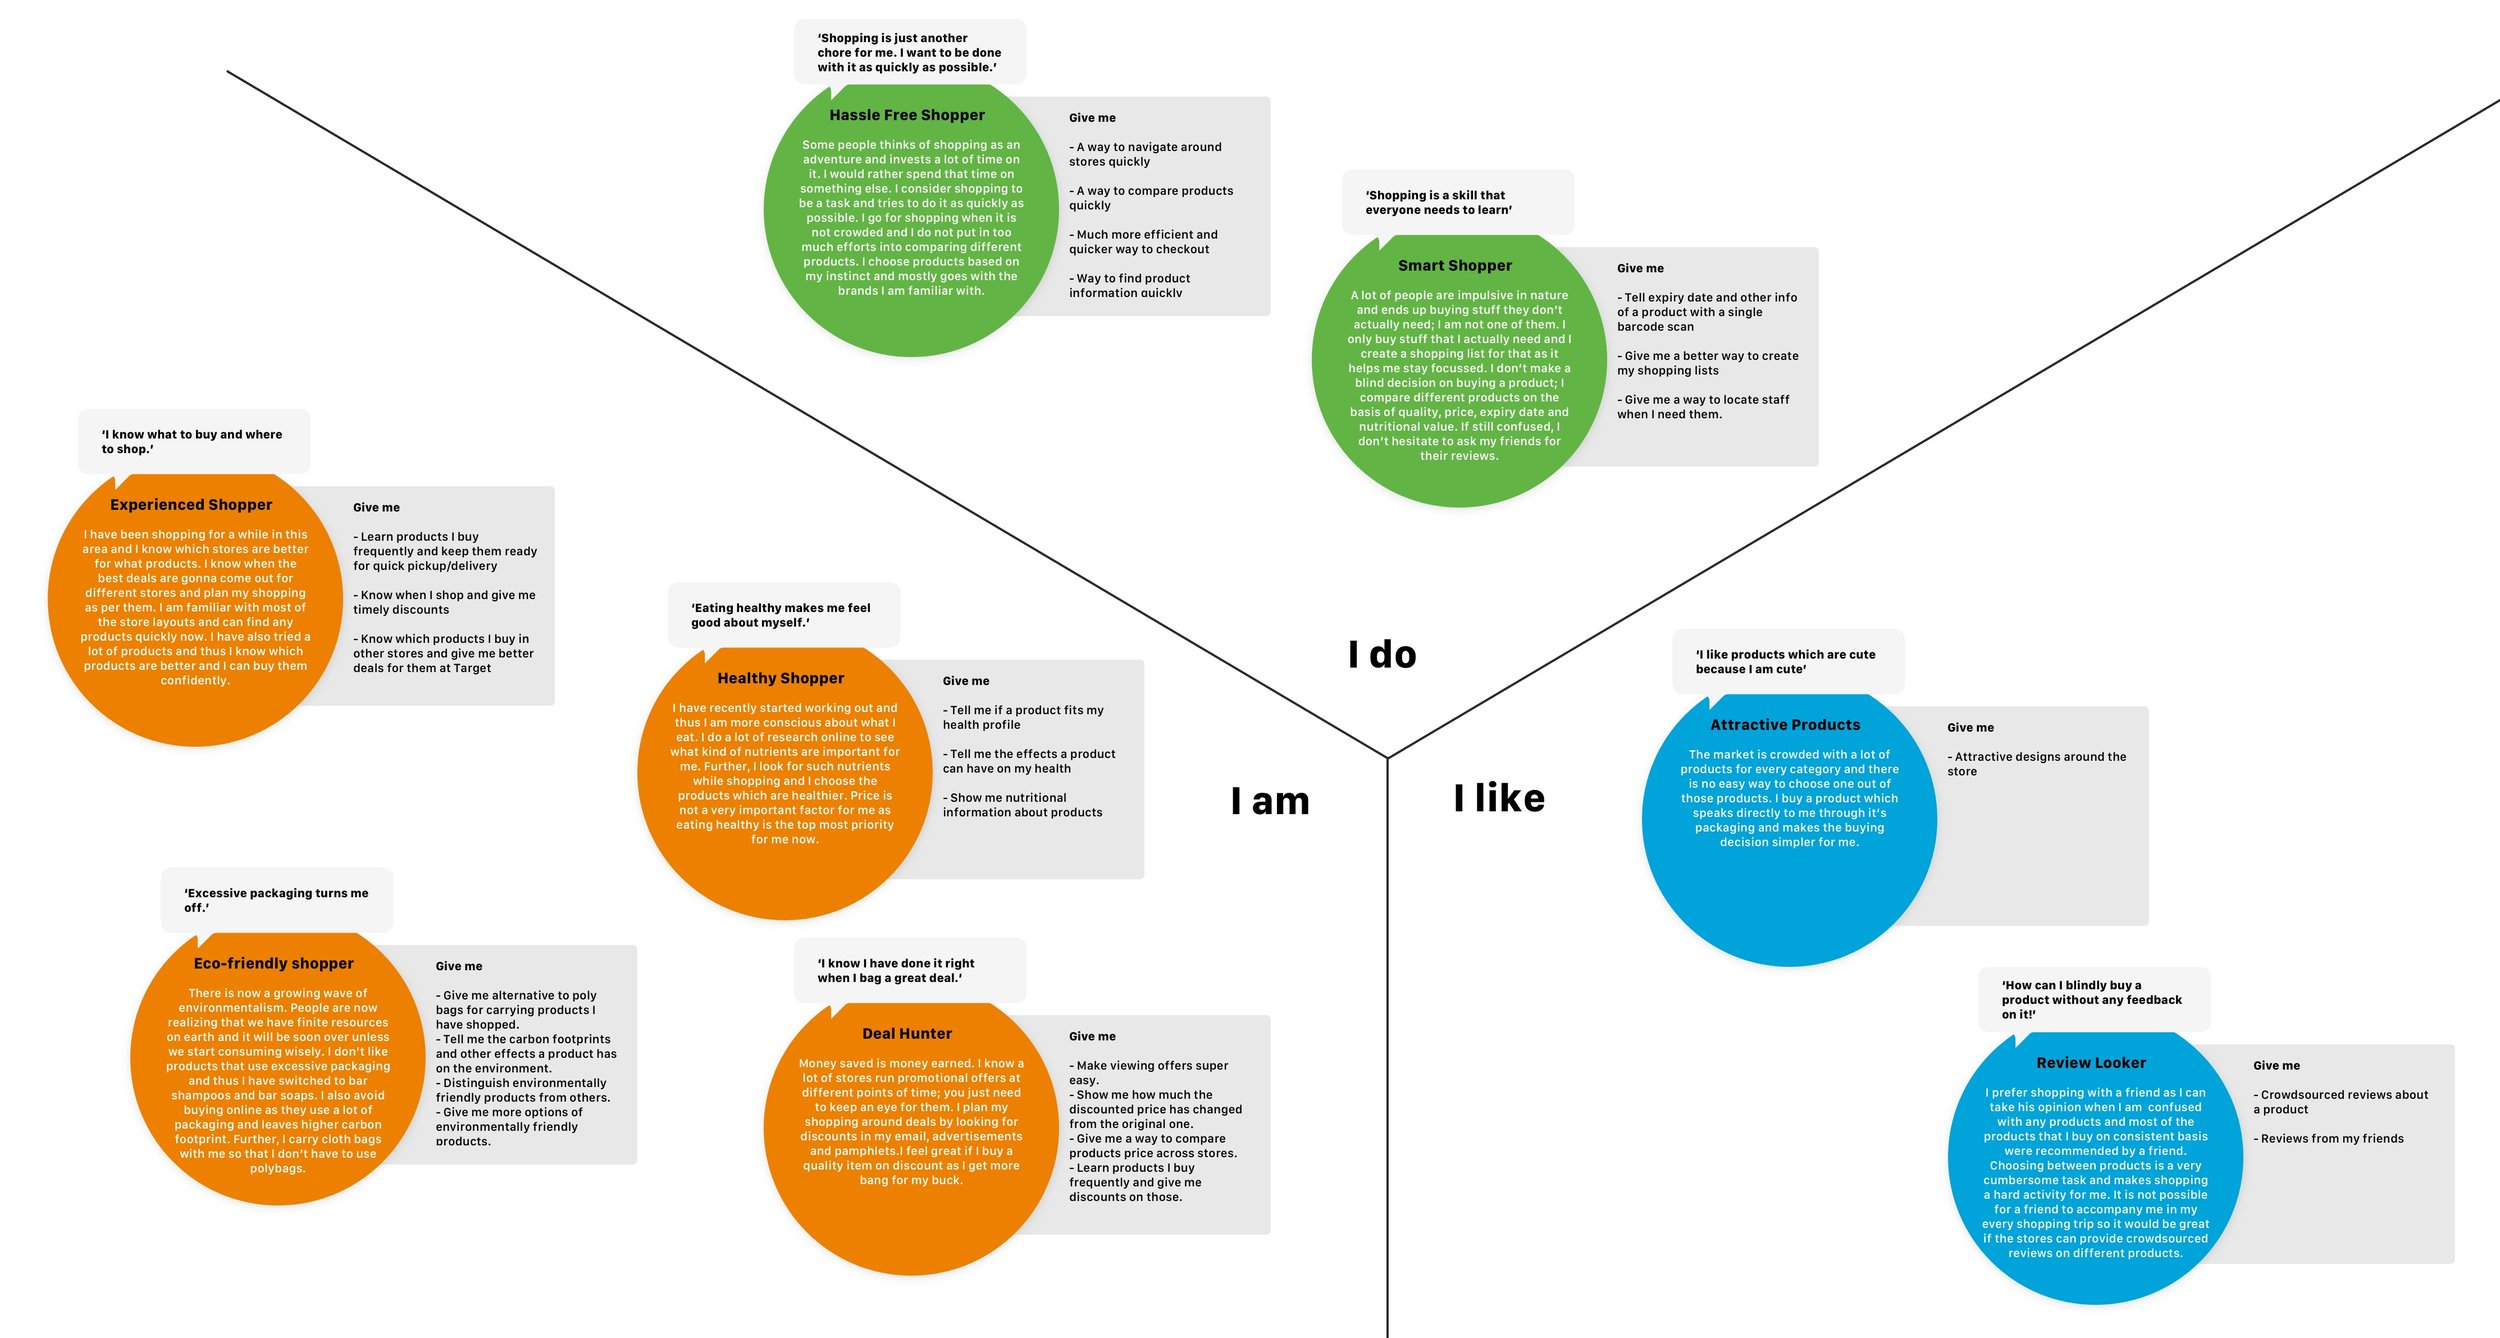 "Image 8. Consolidated Identity Model (click on the image to zoom in) showing the different observations of sources of pride, self-esteem, and value that emerged during the interview. The different identity elements relevant to the project focus have been depicted here. The ""I Do"" element conveys the things that they do and have been noted form the observations during the contextual interview. They are smart and hassle-free shoppers. The ""I am"" represents identity elements that reveal an overarching approach of the personality, as conveyed by the identity elements- Experienced Shopper, Healthy Shopper, Eco-friendly Shopper, and Deal Hunter. The ""I like"" represents what is desired by the shoppers- Attractive Products and Reviews."